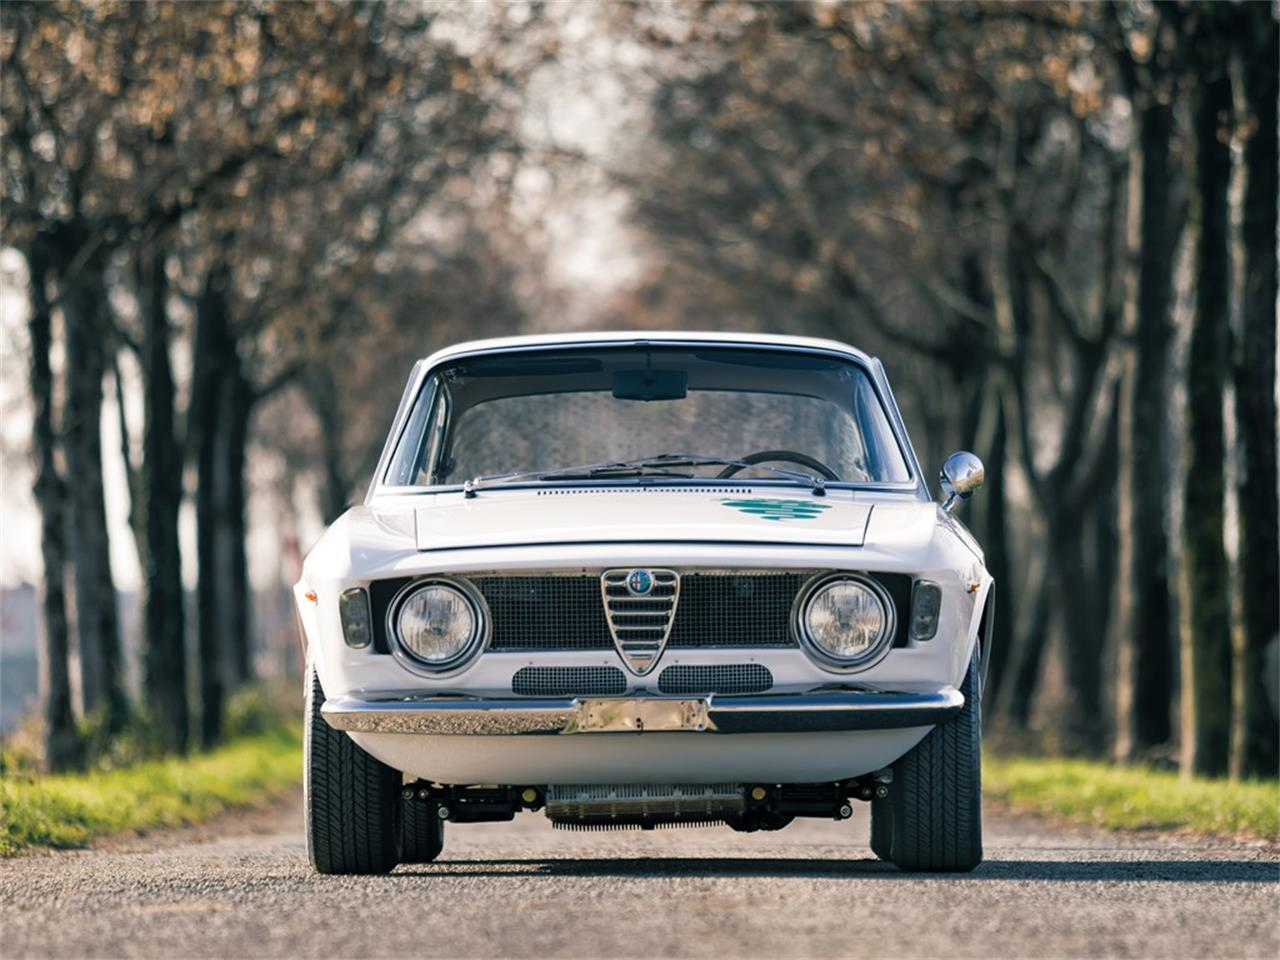 Large Picture of Classic '73 Alfa Romeo GTA 1300 Junior Stradale Auction Vehicle - PCJO